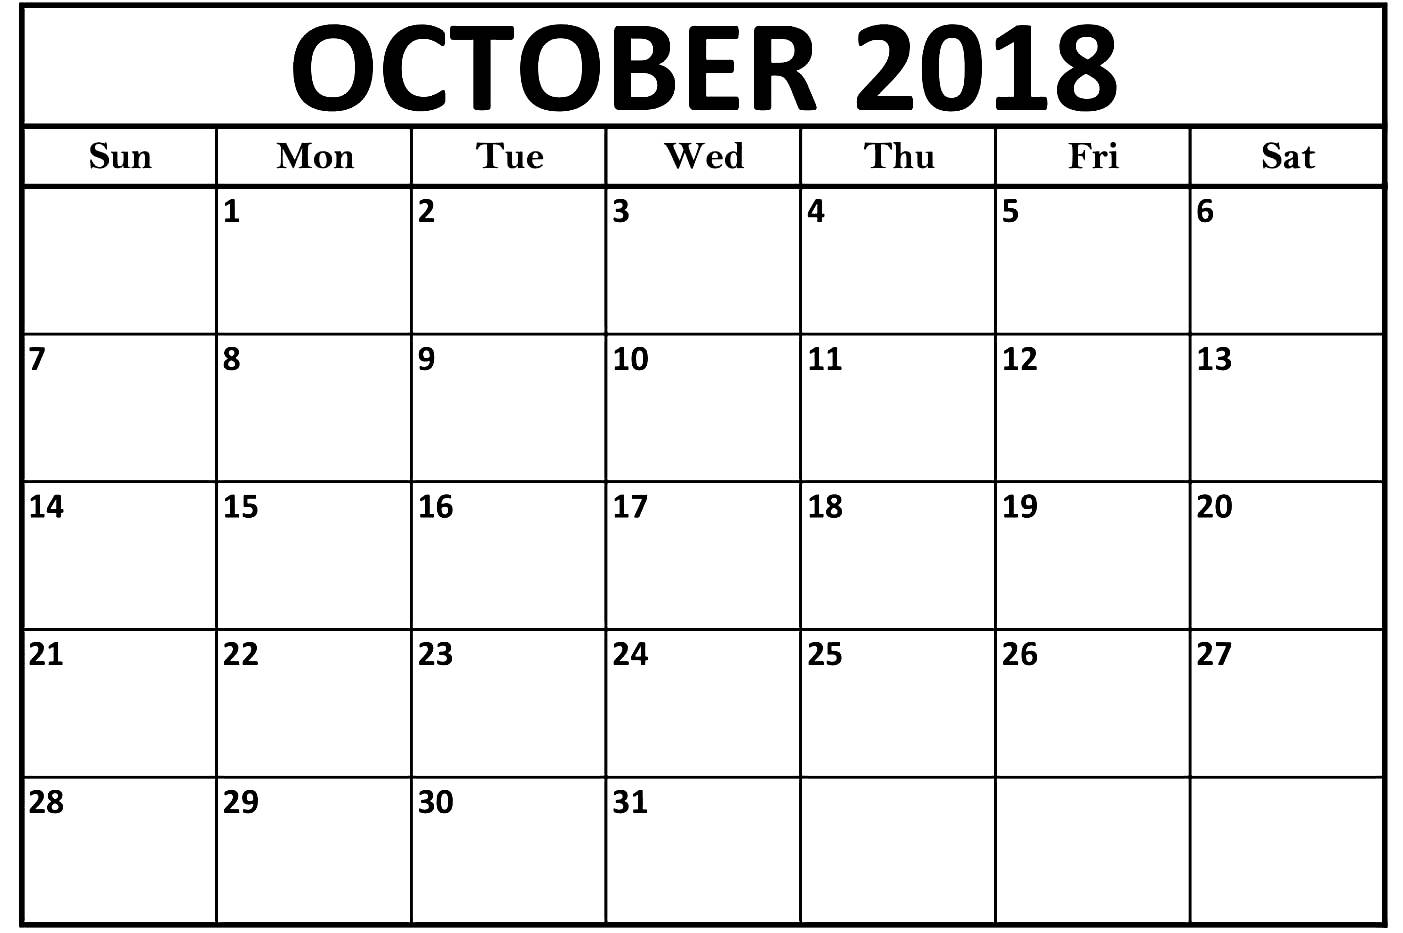 download printable october 2018 calendar template november 2019 October 2018 Calendar Printable Template erdferdf